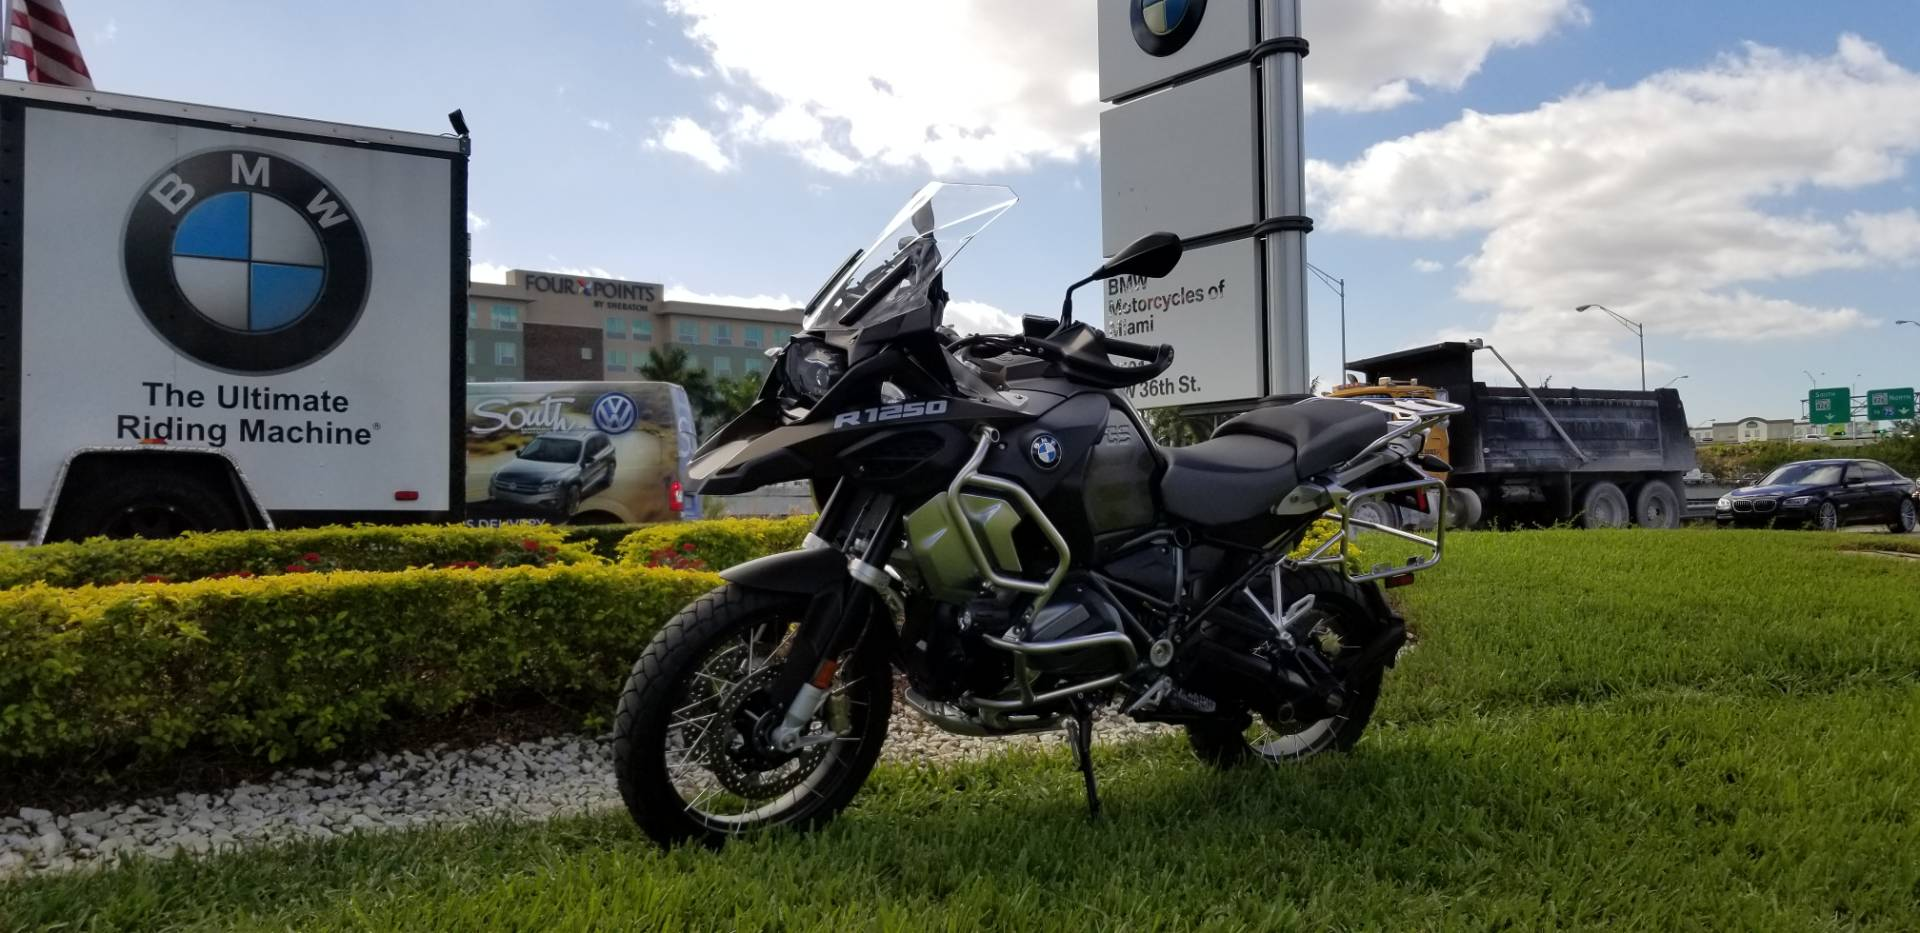 New 2019 BMW R 1250 GSA for sale, BMW for sale R 1250GSA, BMW Motorcycle R1250GSA, new BMW 1250GS Adventure, R1250GSAdventure, BMW Adventure, BMW Motorcycles of Miami, Motorcycles of Miami - Photo 5